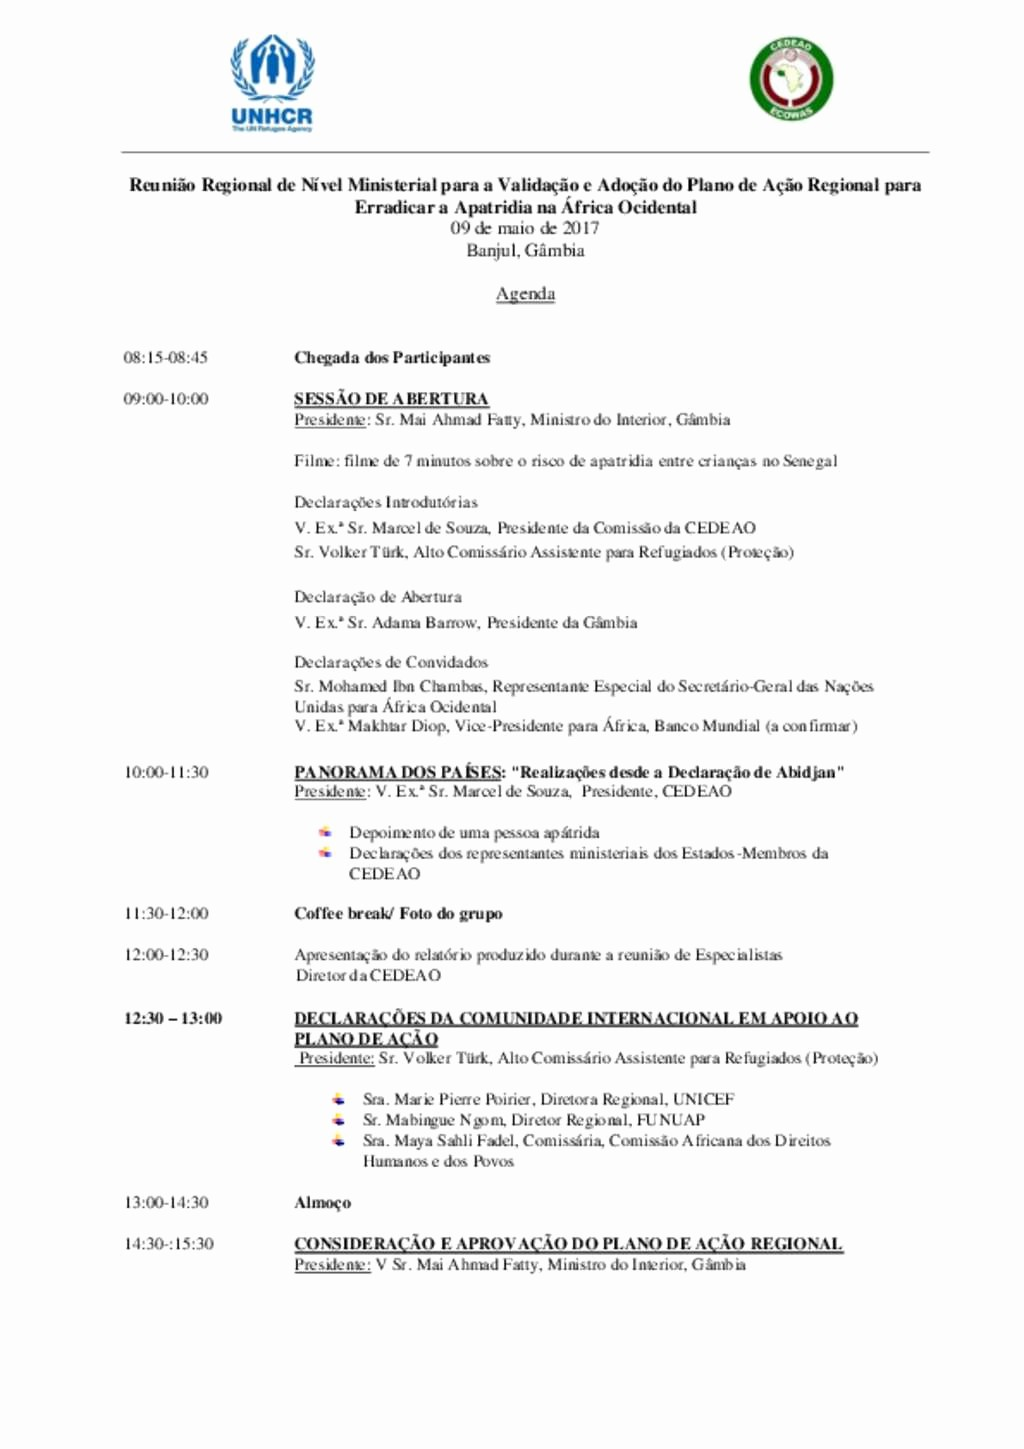 How to Document Meeting Minutes Best Of Document Agenda Ministerial